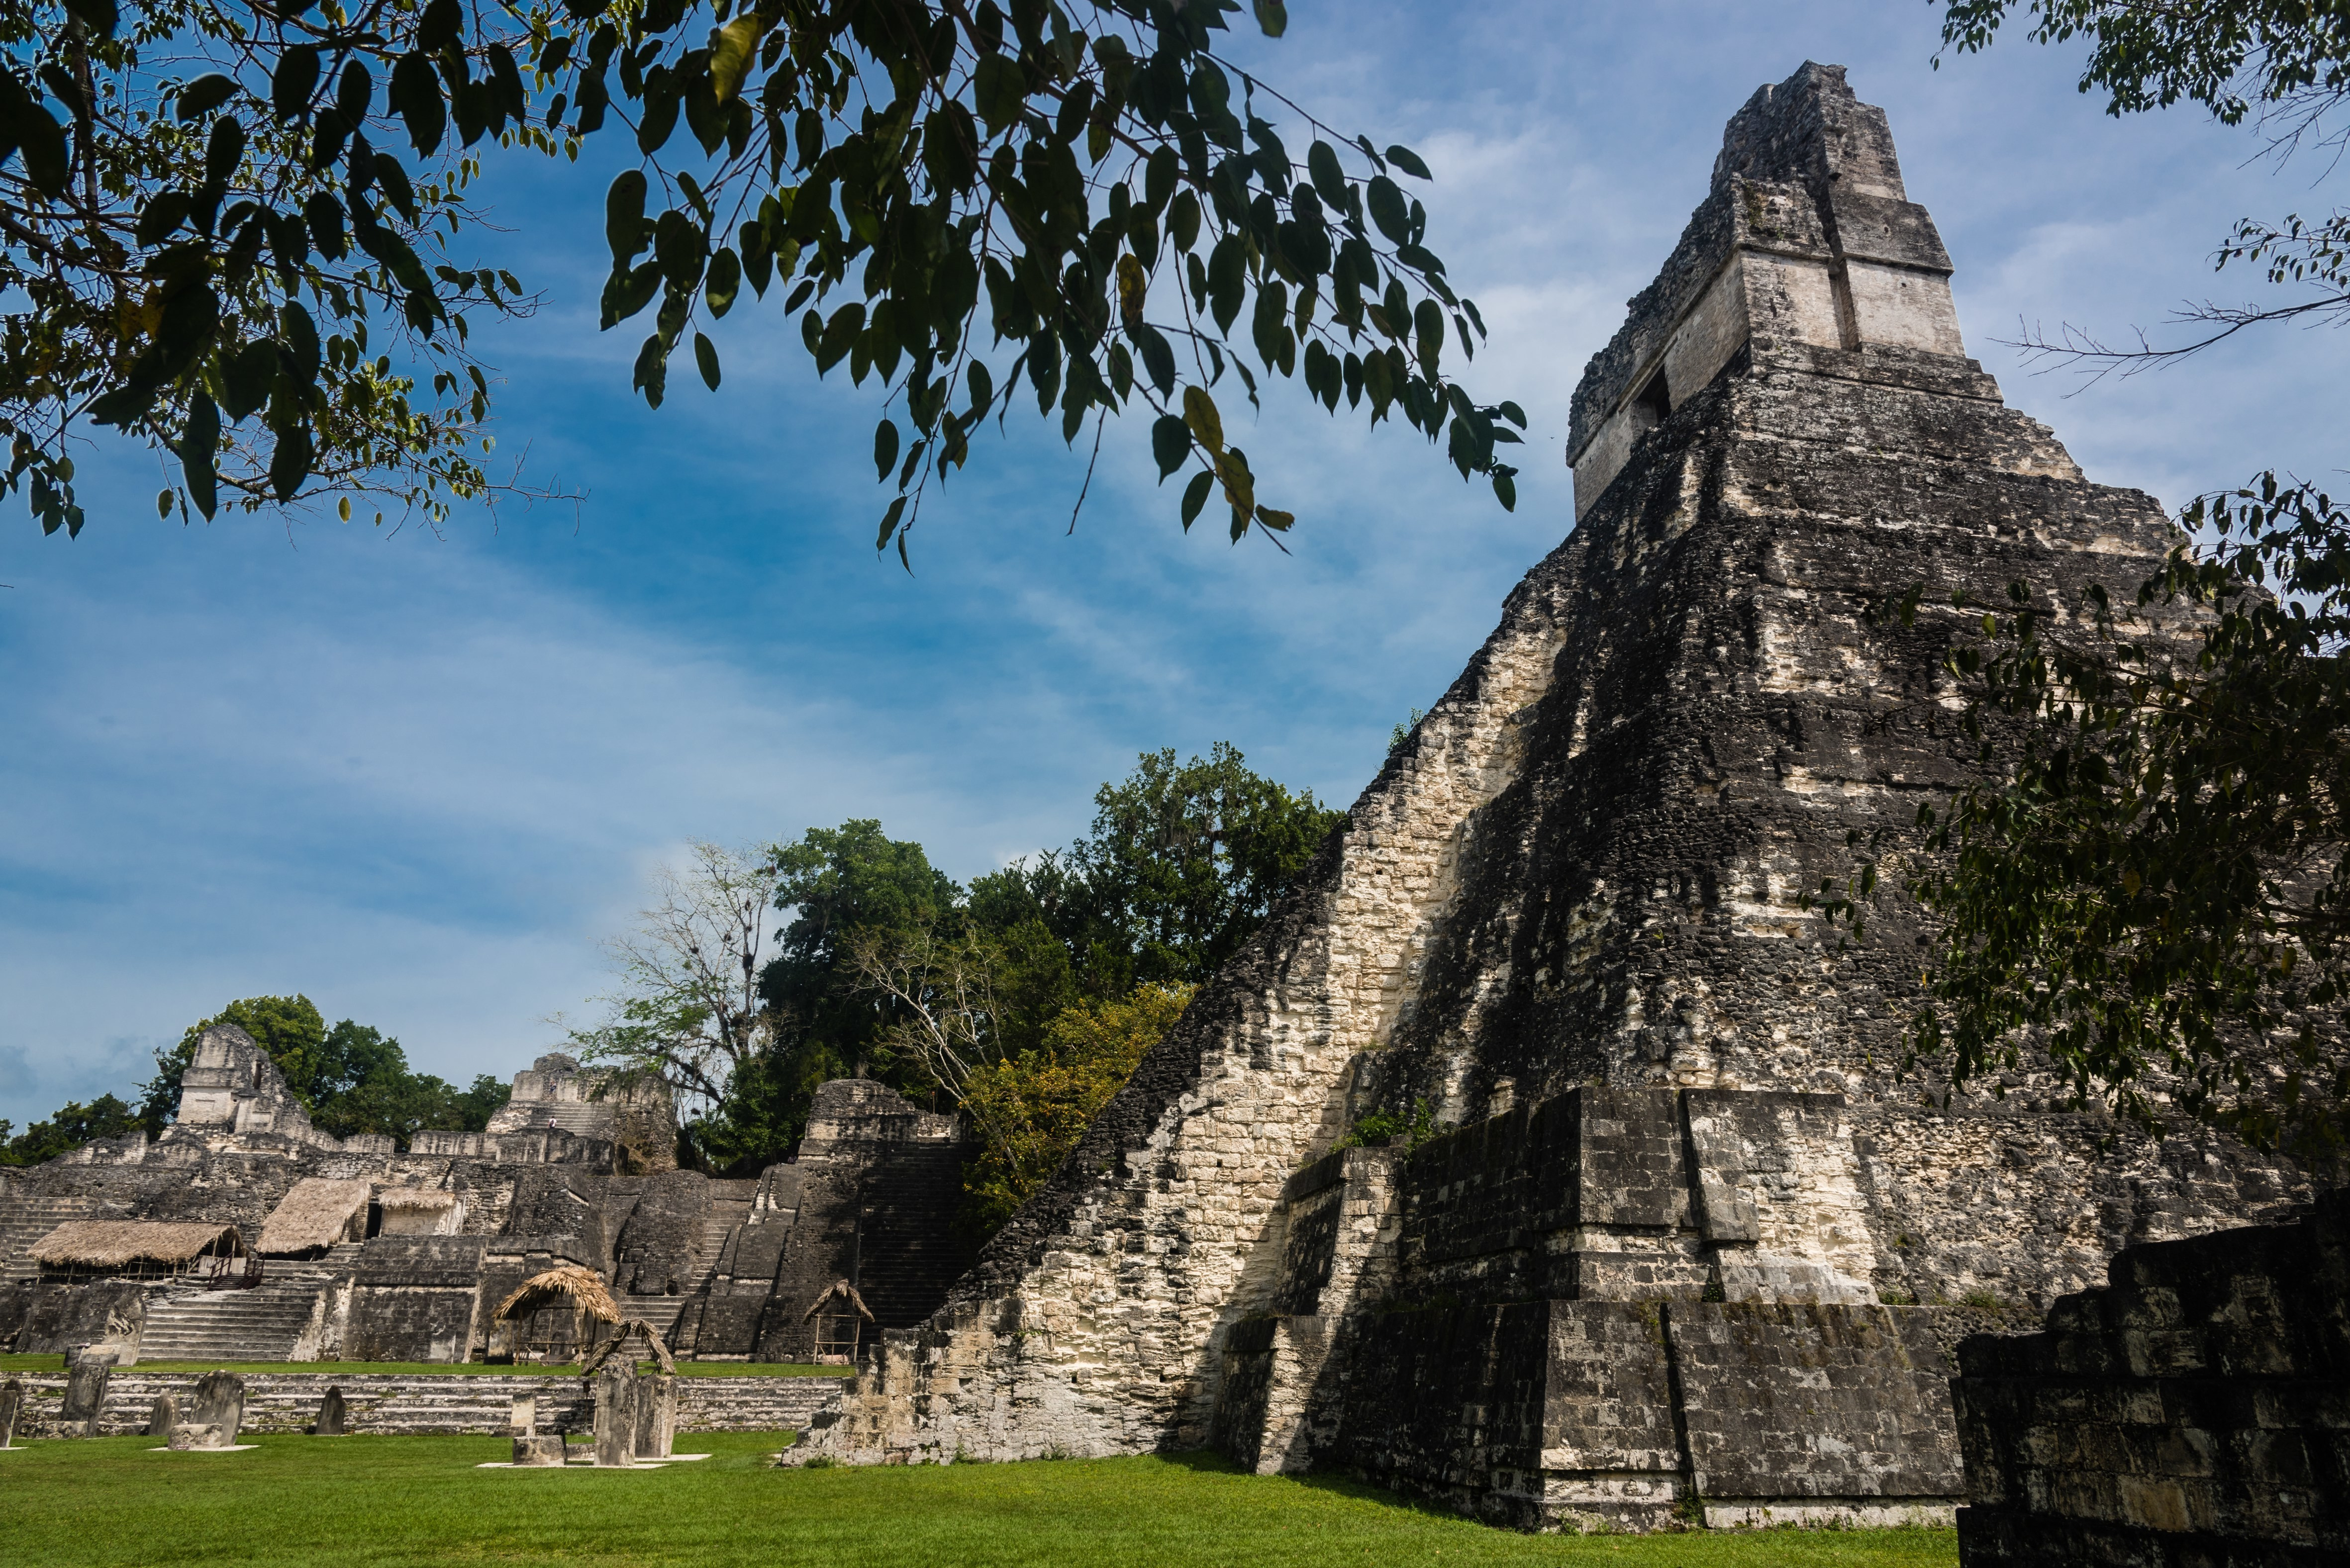 Ancient Maya ruins at Tikal in northern Guatemala, near the border with Belize. Researcher Heather McKillop explains that Maya sites like Tikal could have been popular marketplaces to trade salt and other commodities. (David DUCOIN/Gamma-Rapho/Getty Images)